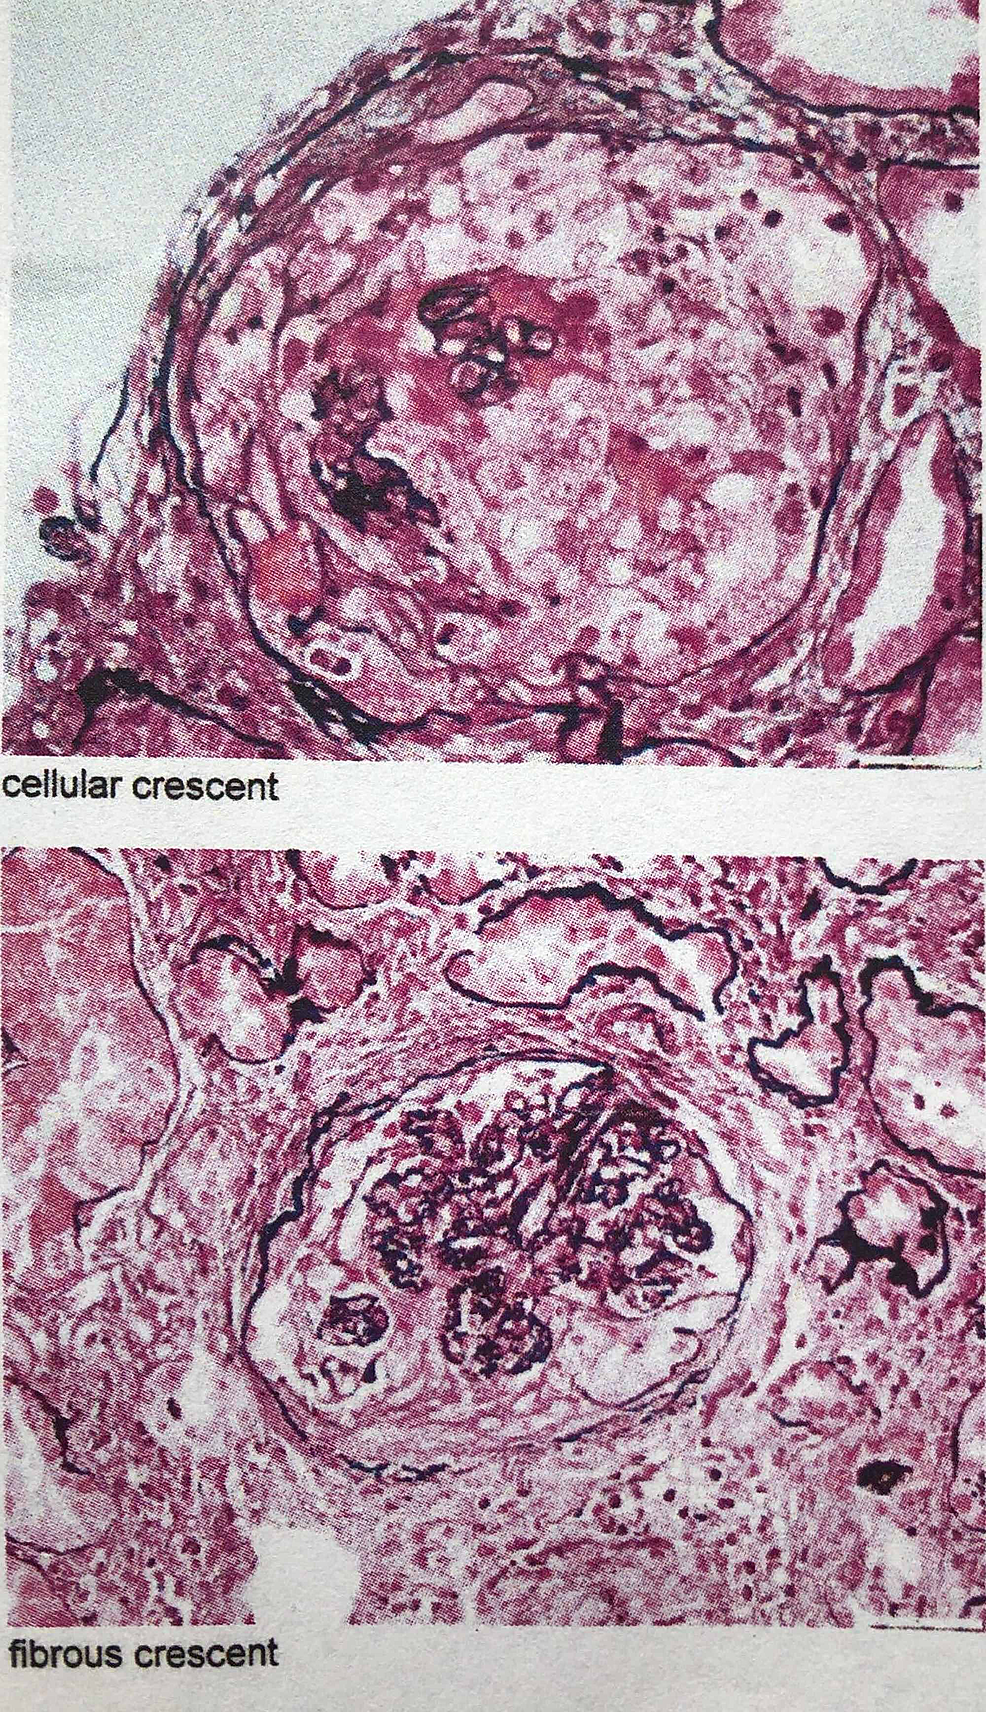 Renal-biopsy-images-showing-crescentic-glomerulonephritis